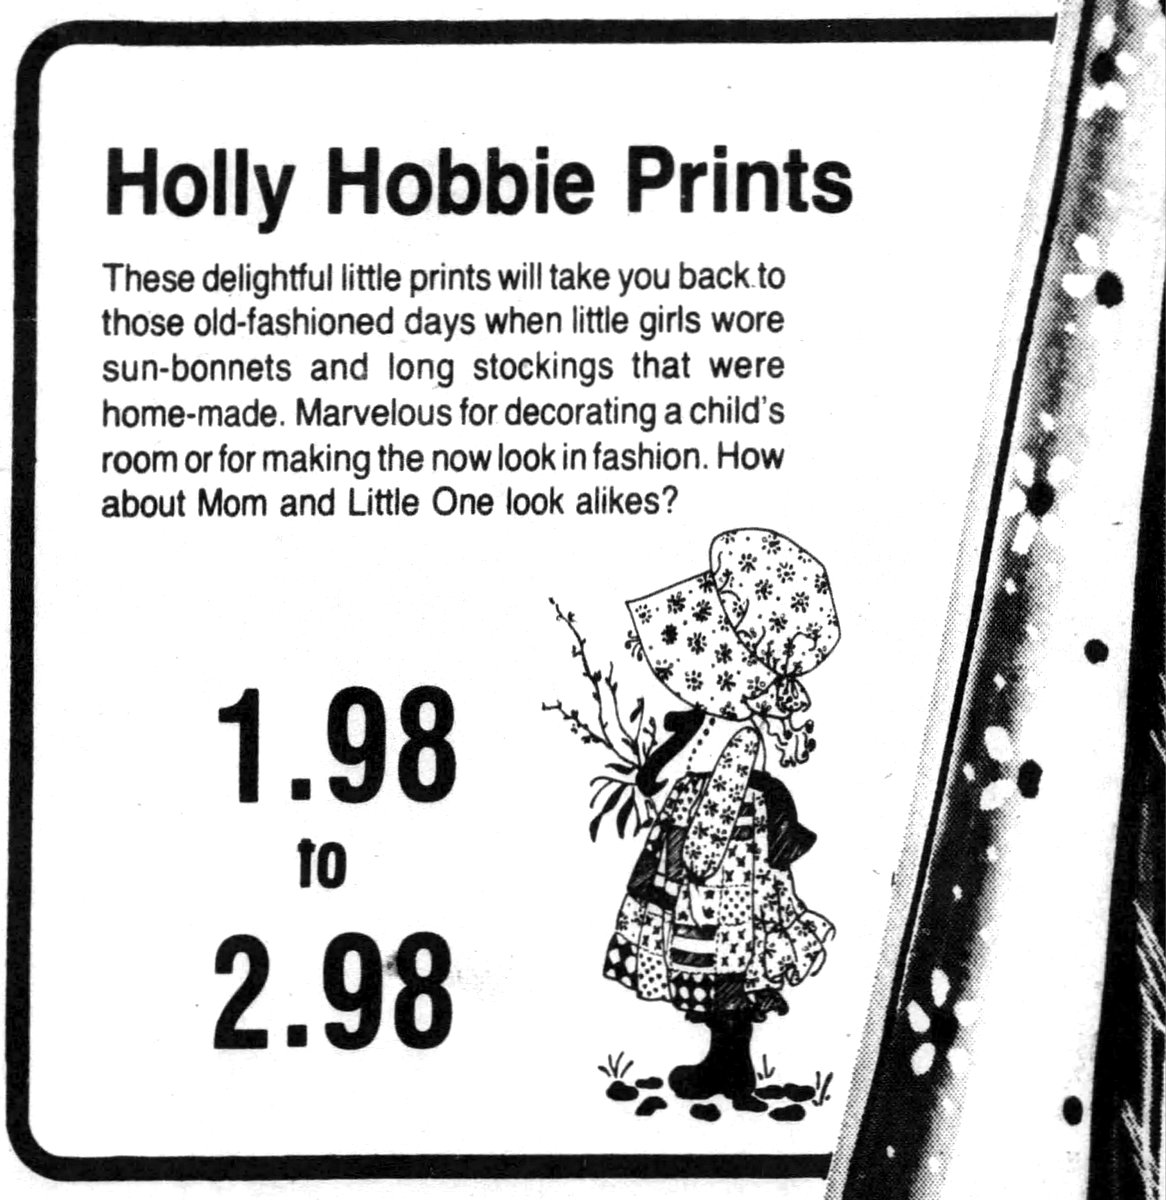 Hollie Hobbie print fabric (1974)